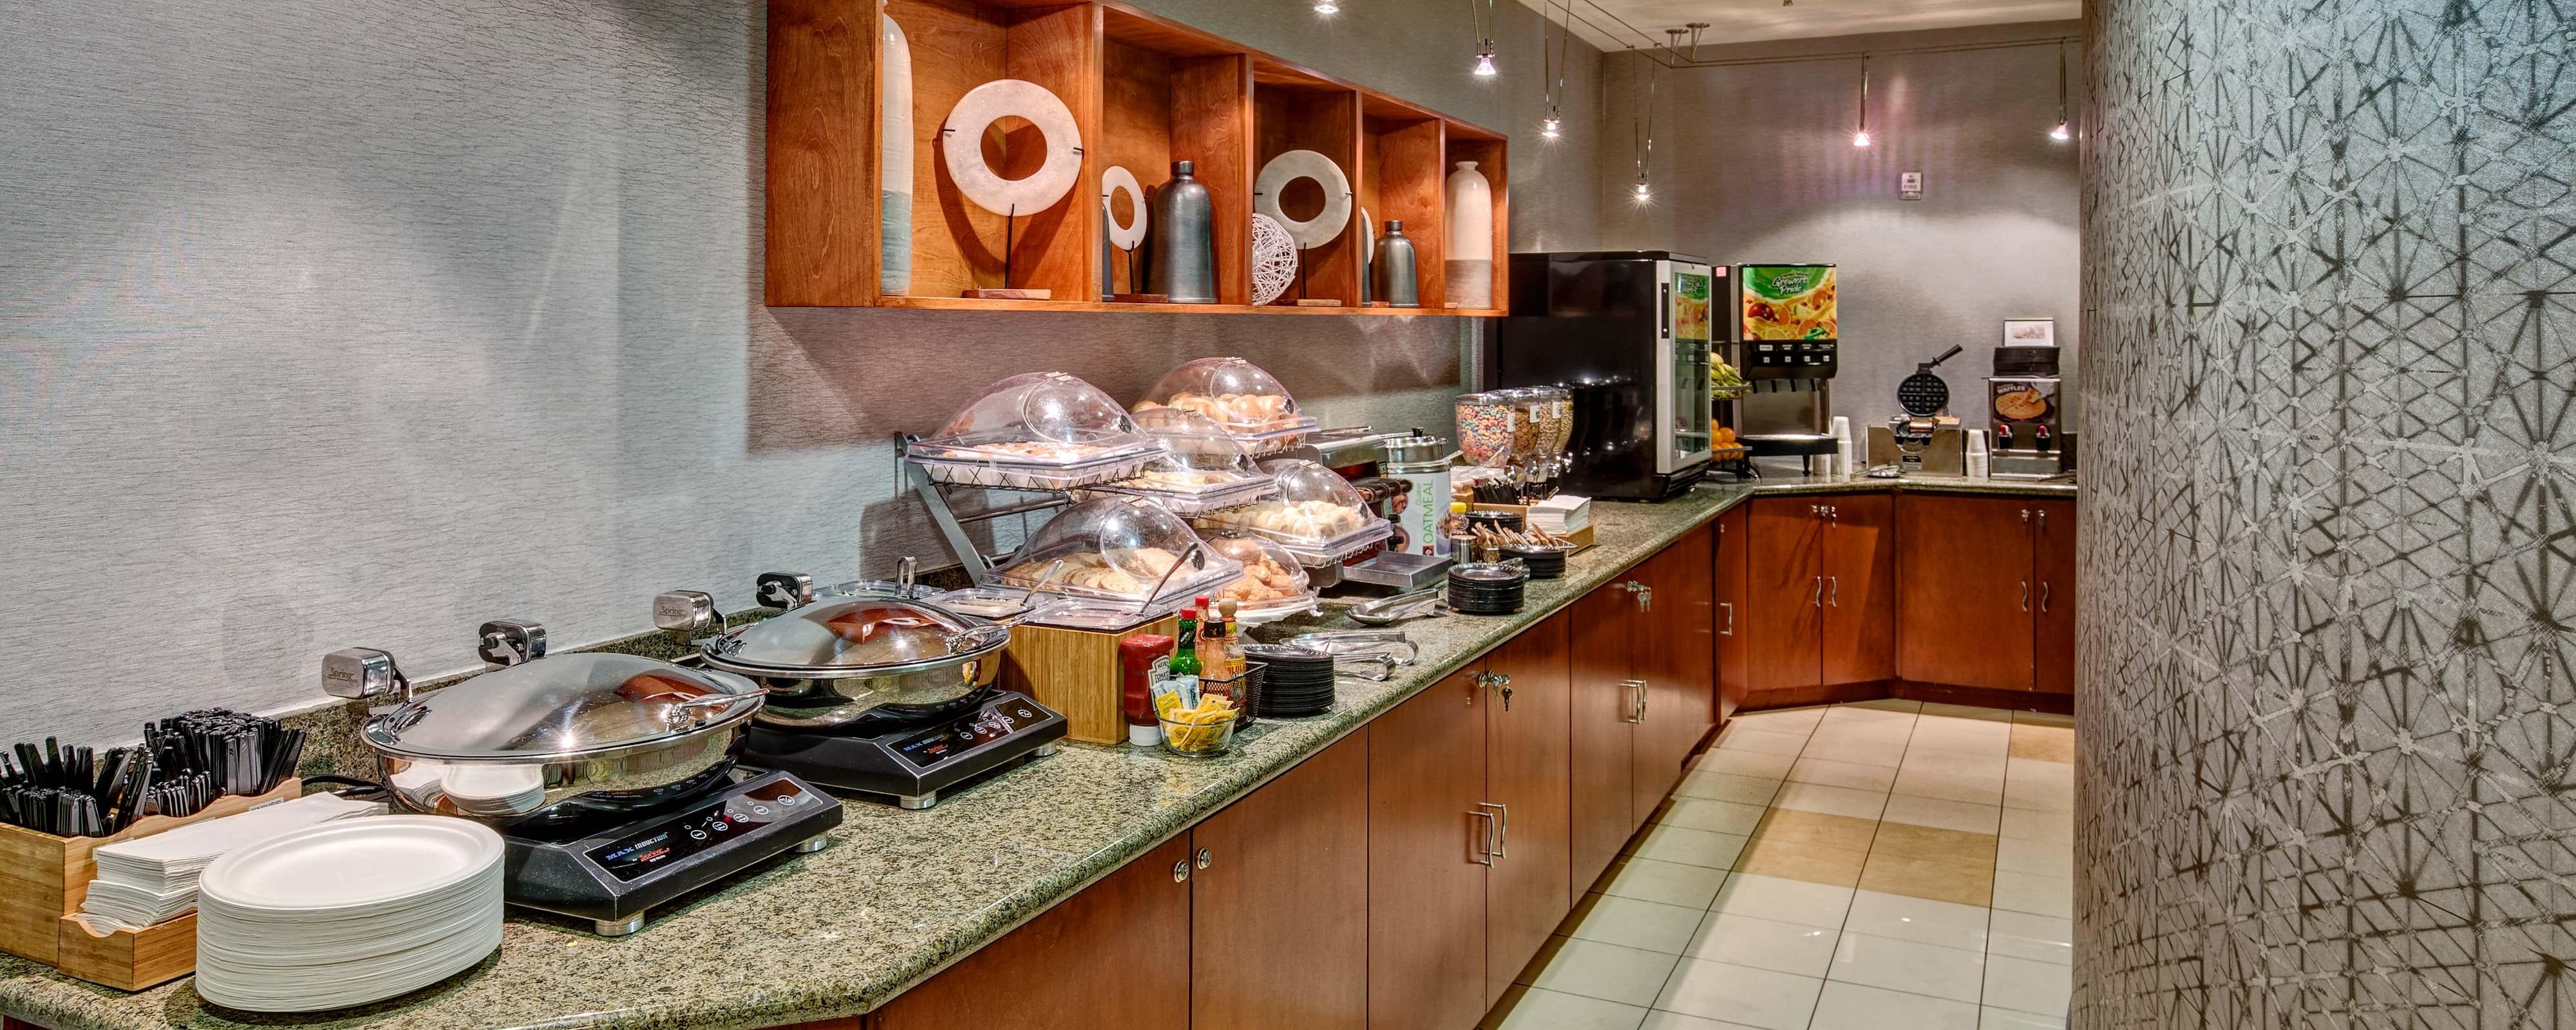 Naples Hotels with Breakfast Free   SpringHill Suites Naples